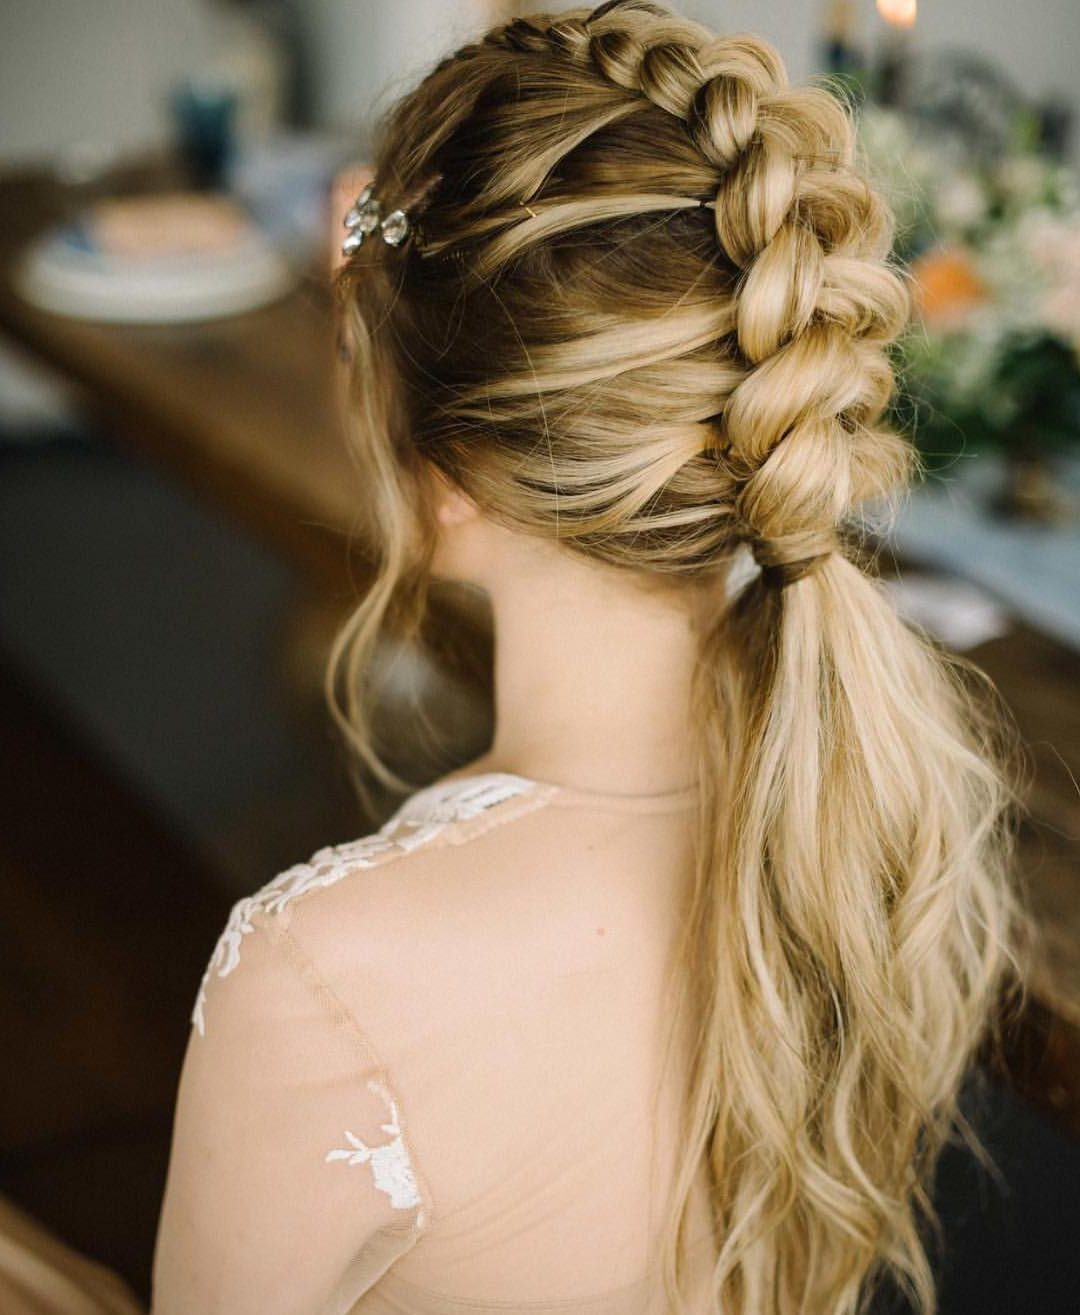 10 Braided Hairstyles For Long Hair – Weddings, Festivals Intended For Recent Brown Woven Updo Braid Hairstyles (View 6 of 20)